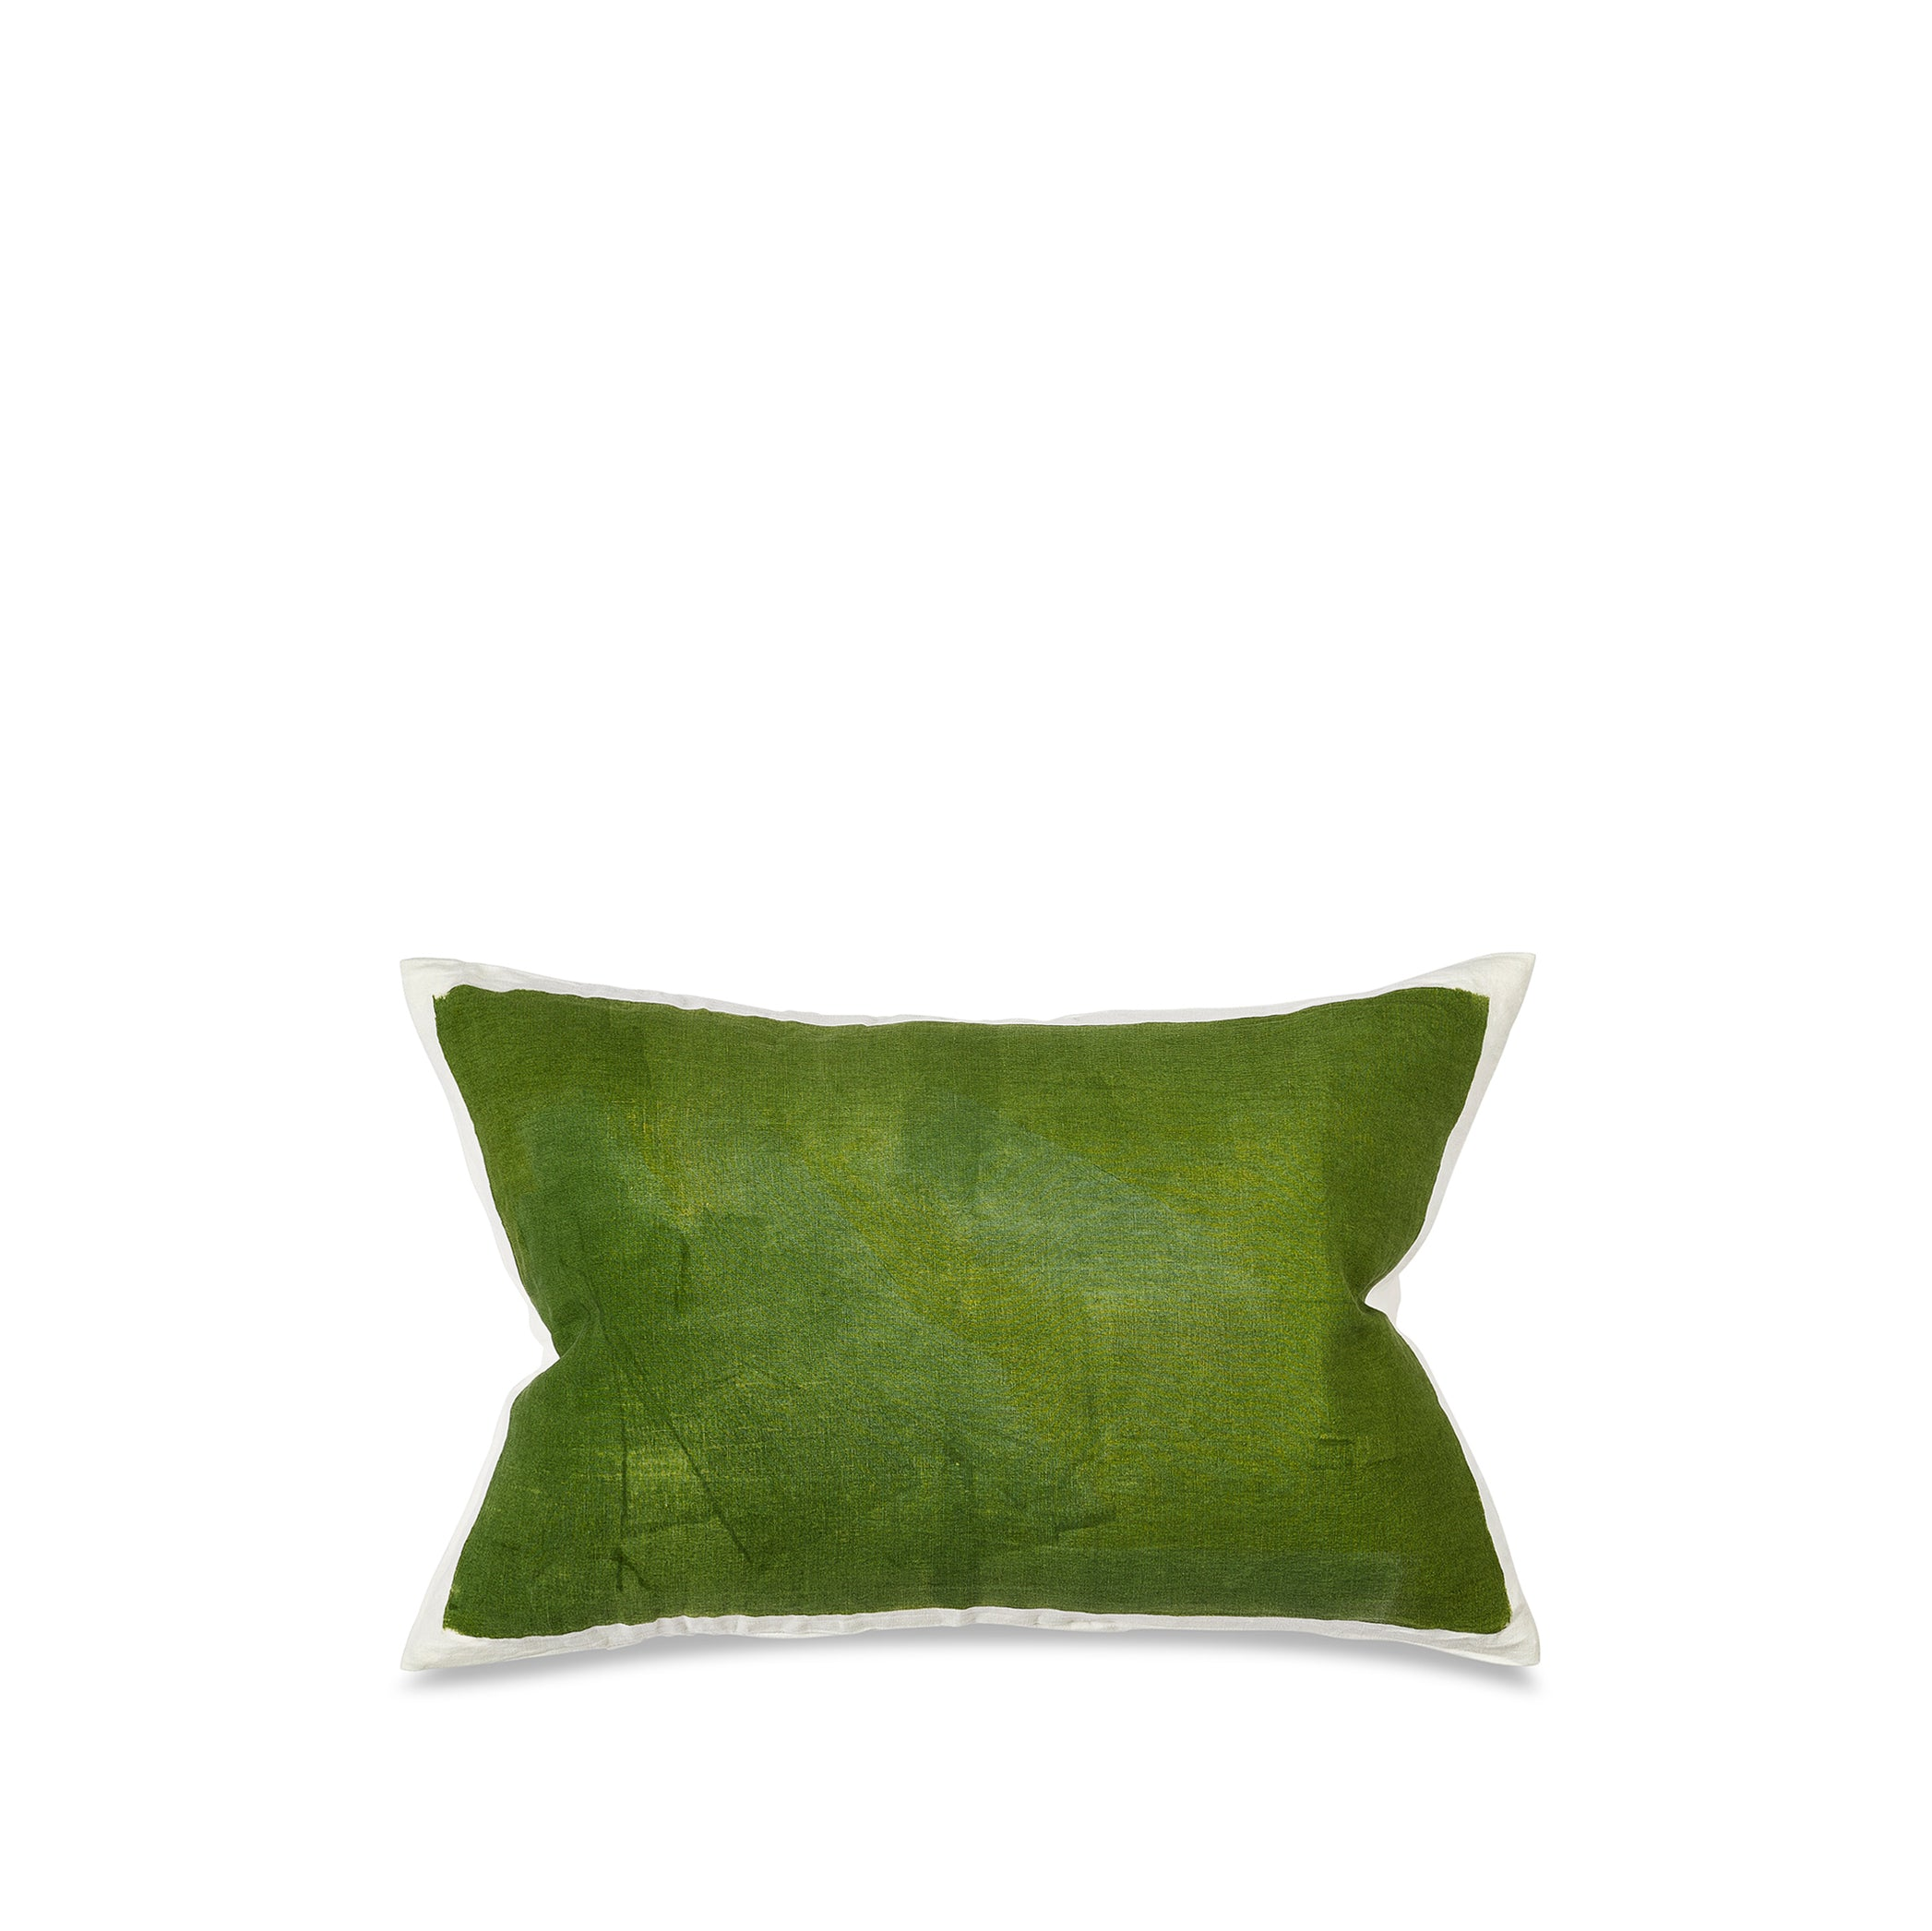 Hand Painted Linen Cushion in Avocado Green, 60cm x 40cm